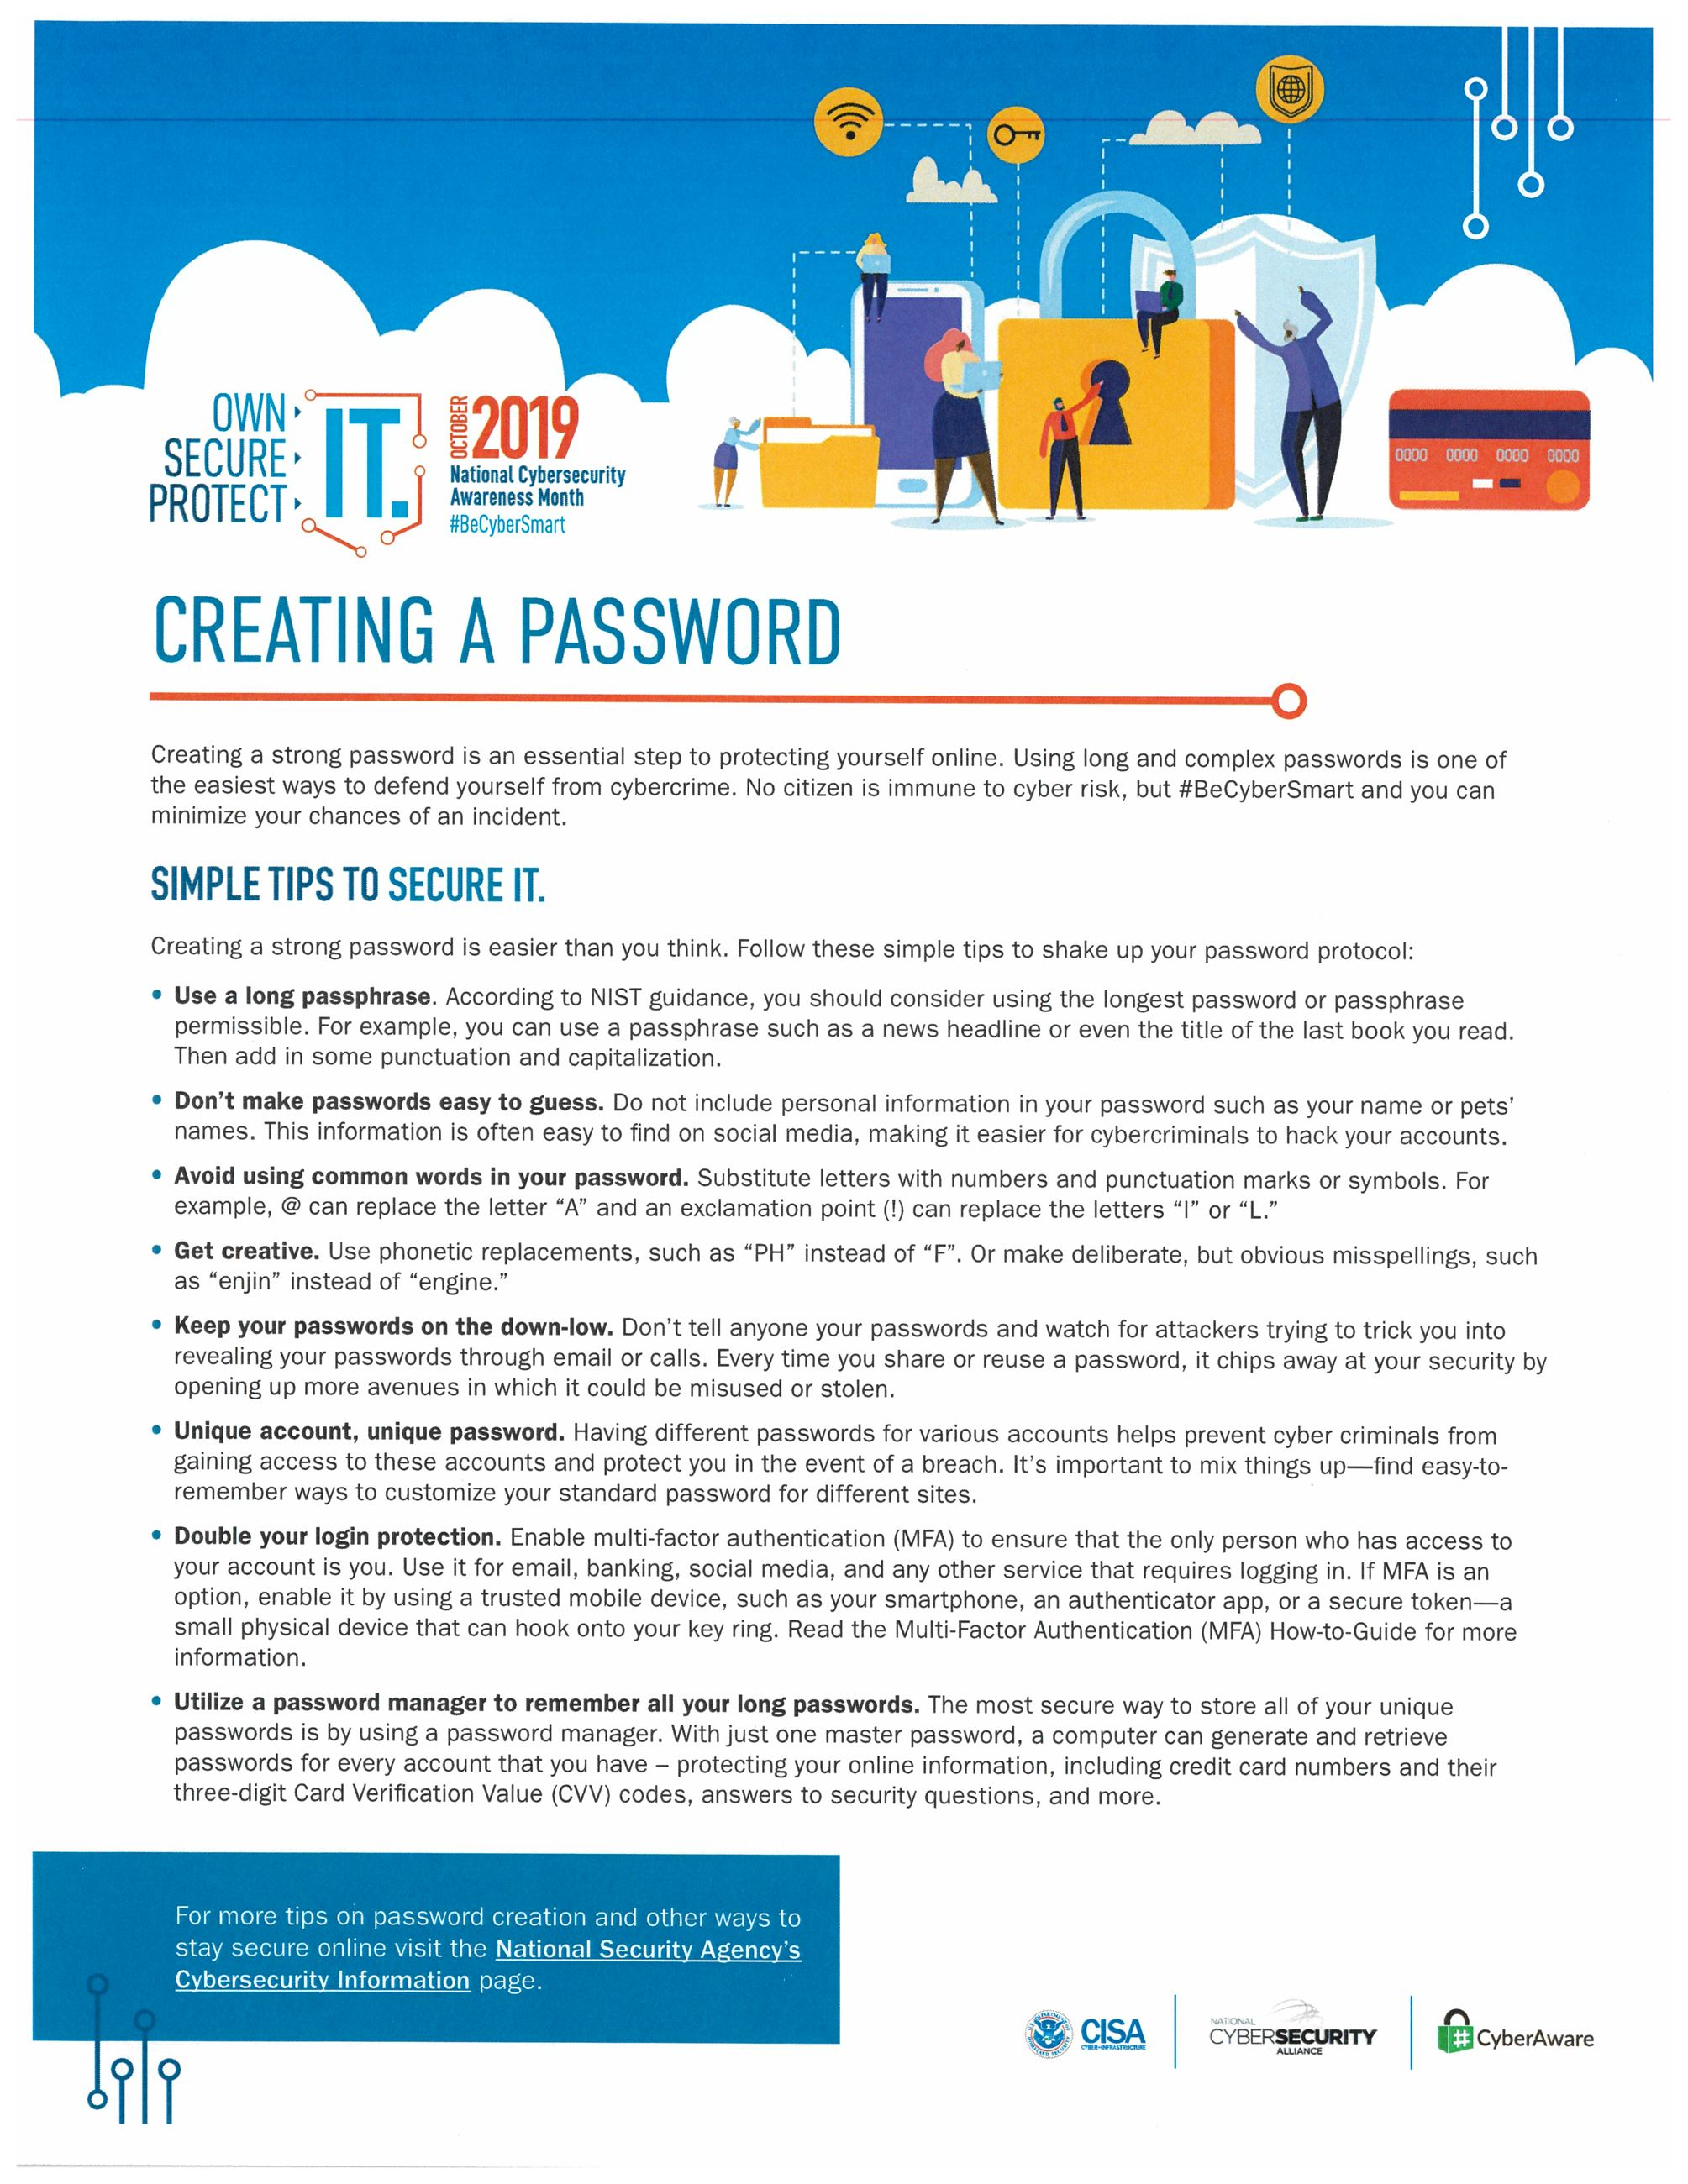 CREATING A PASSWORD training material